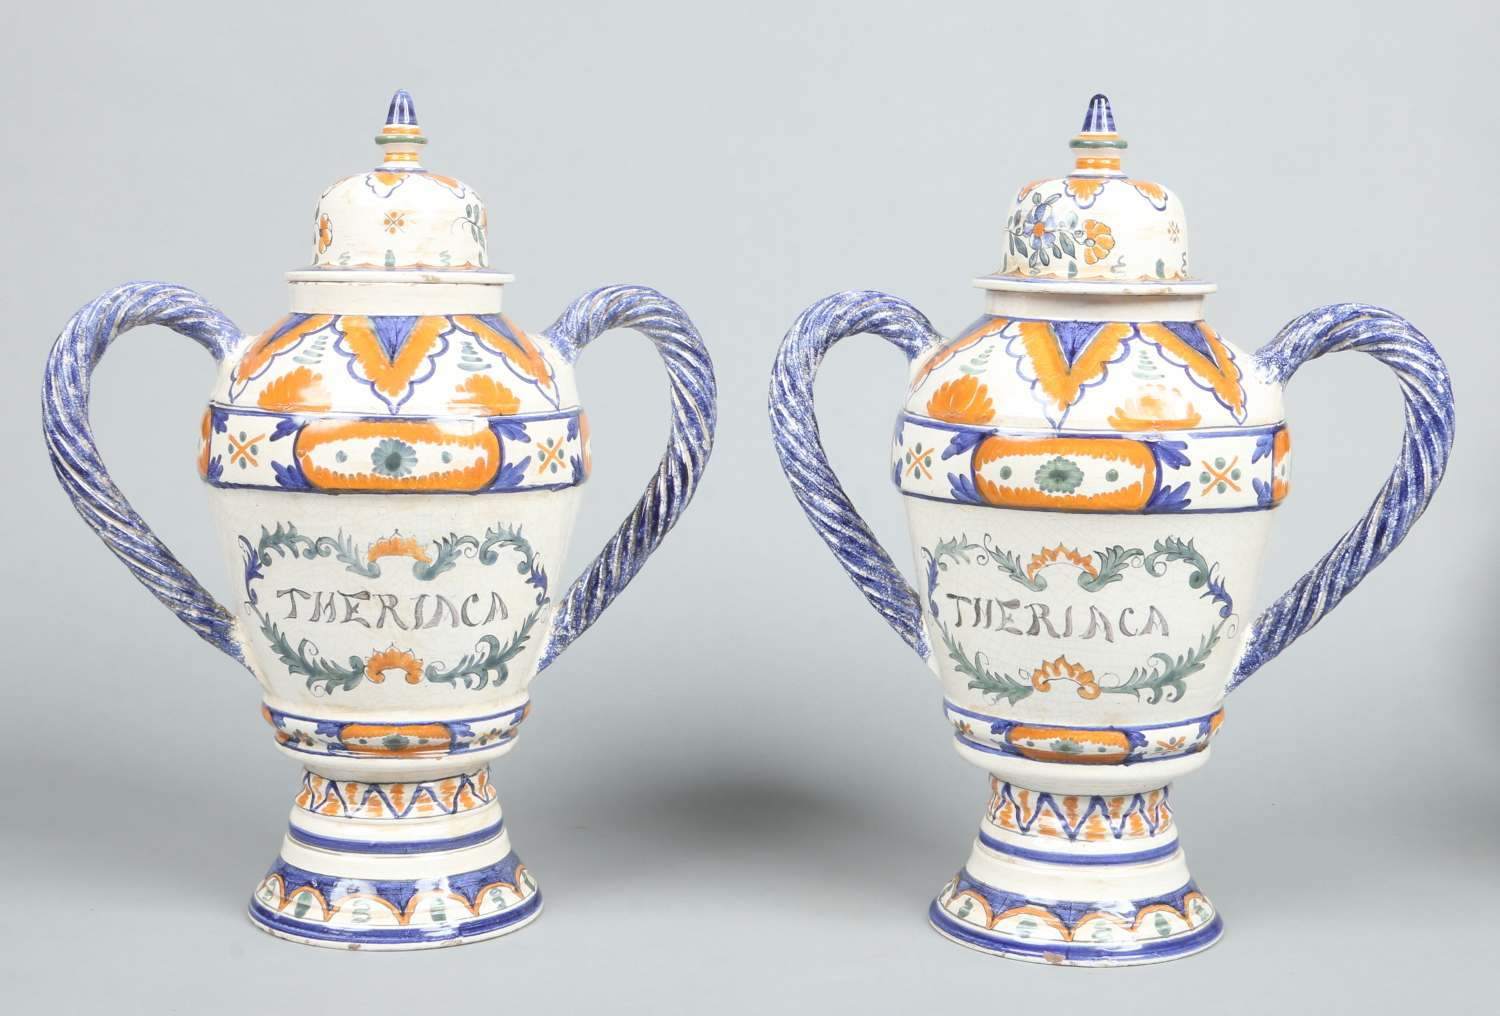 Lot 144 - A pair of Continental faience Theriac drug jars.